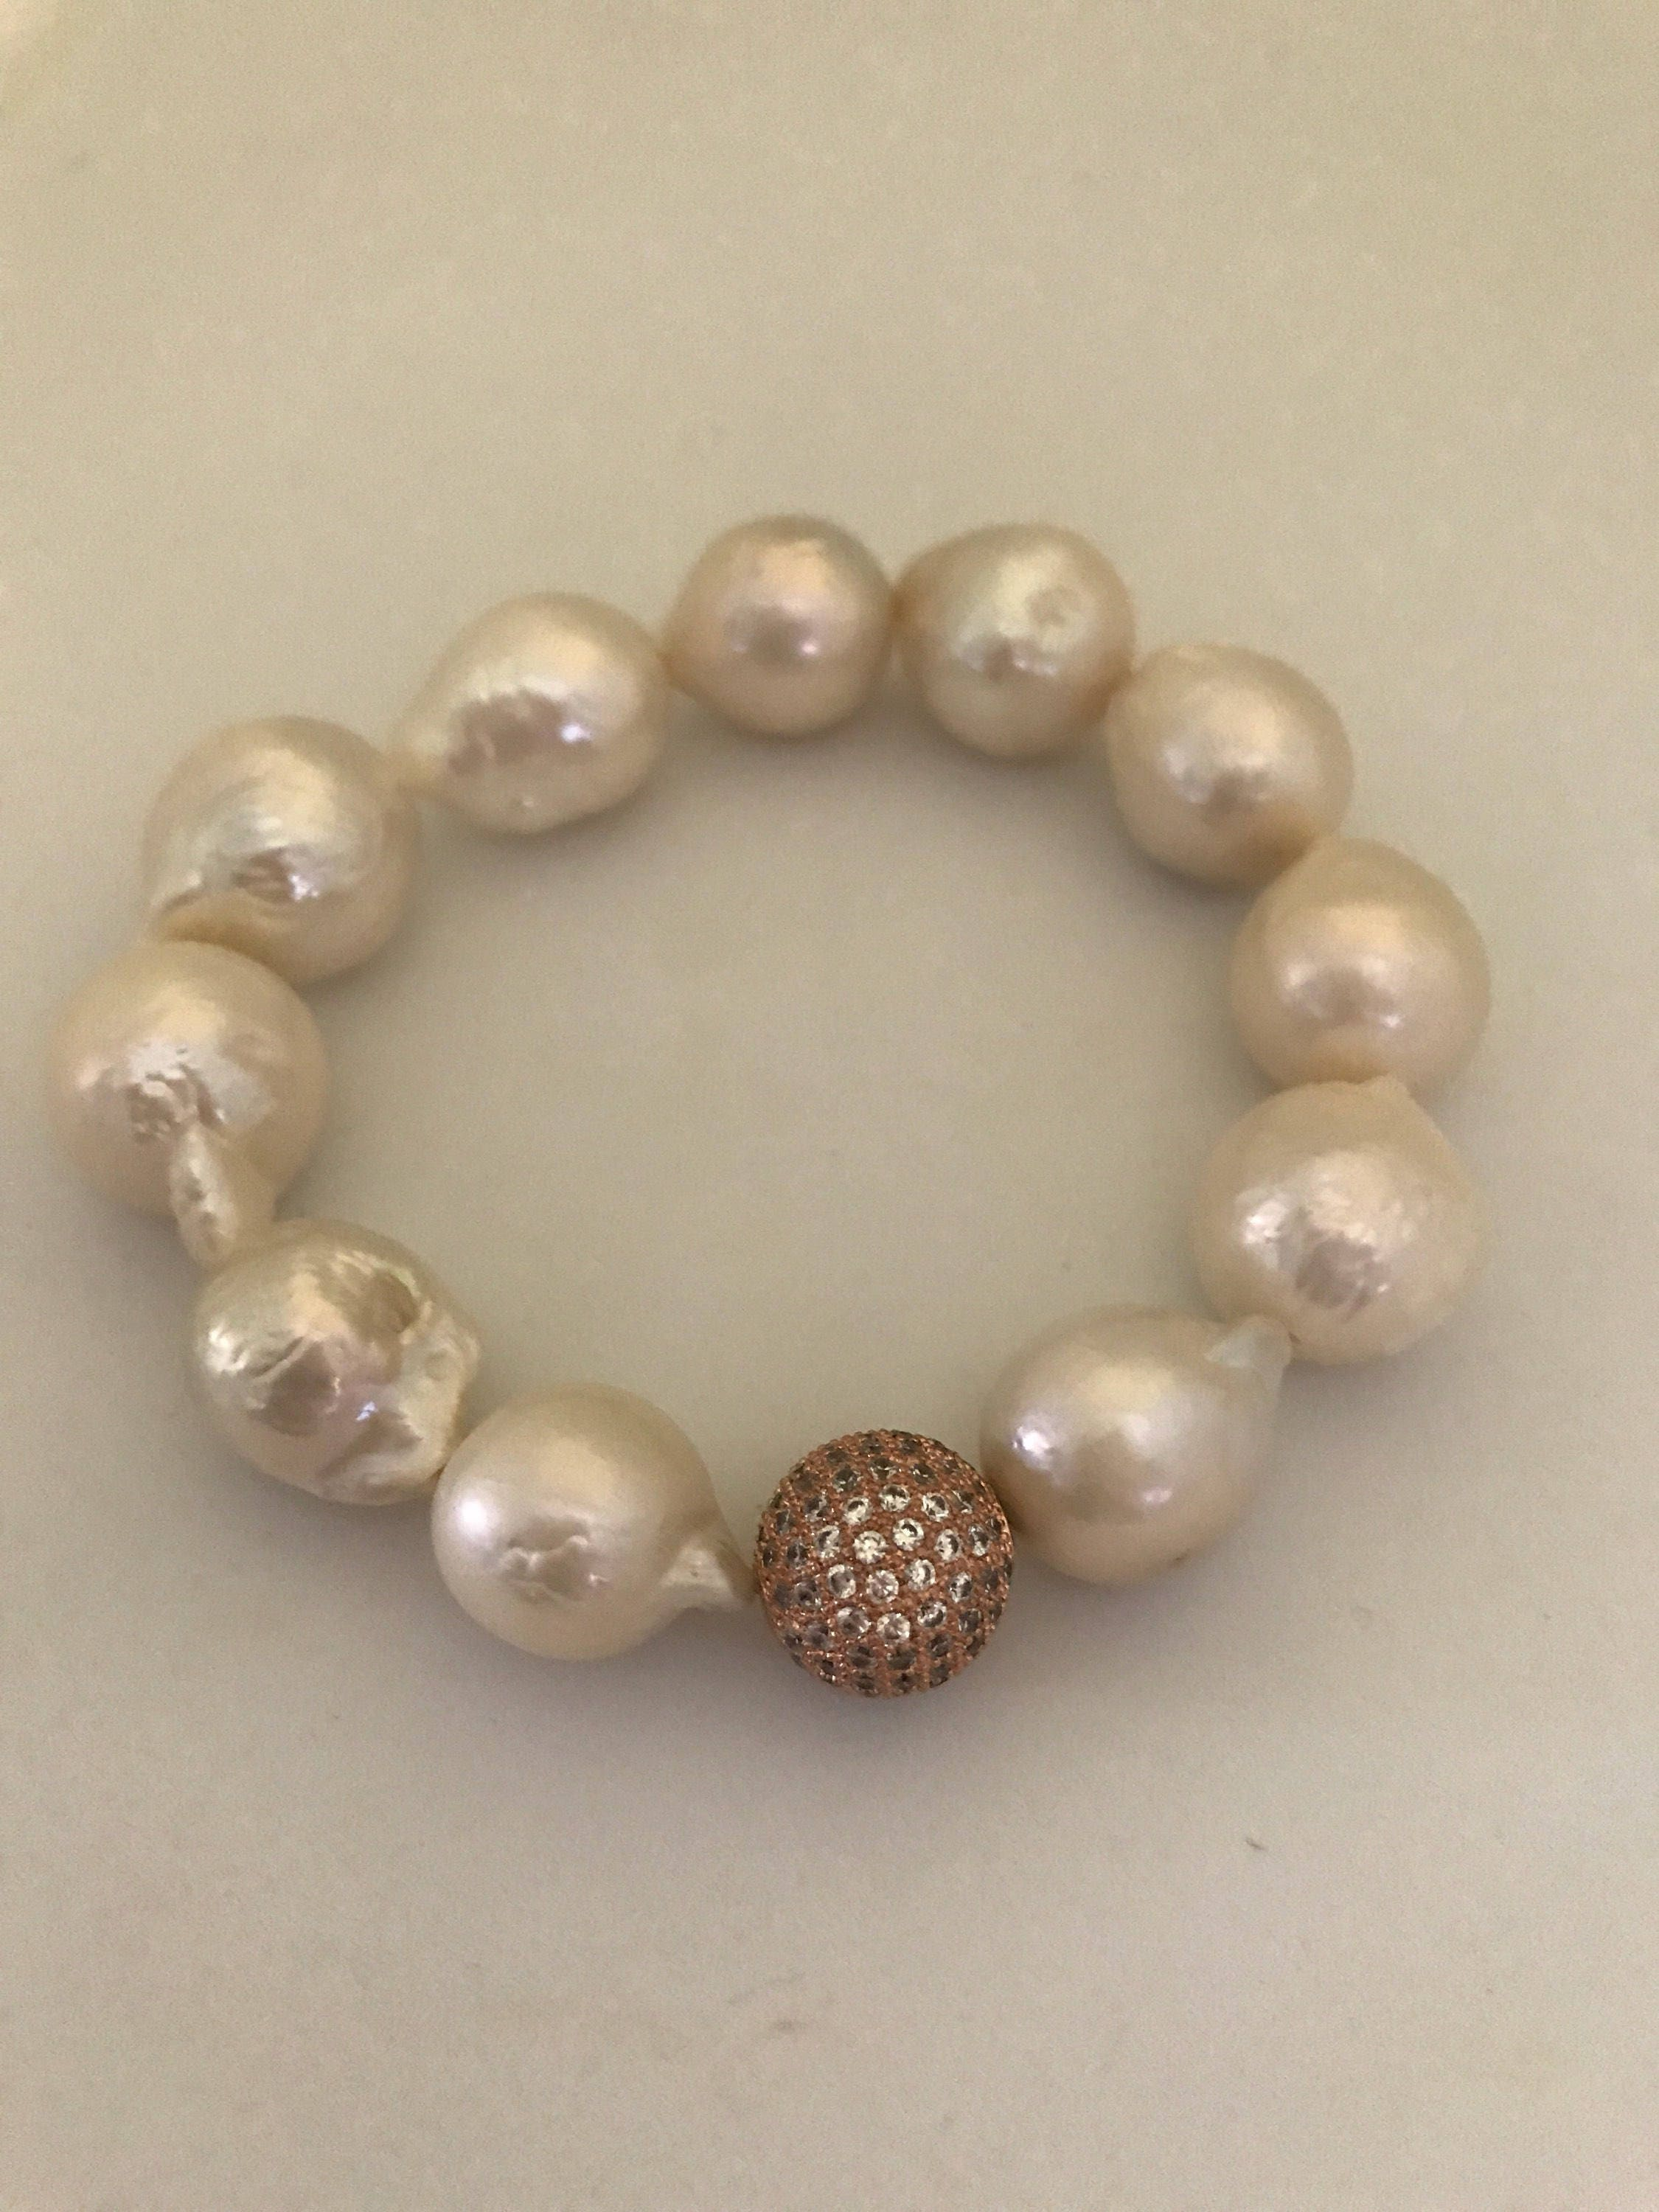 pearls model rows perlee perles front collections dor large view perl jewelry of eu gold en bracelet e